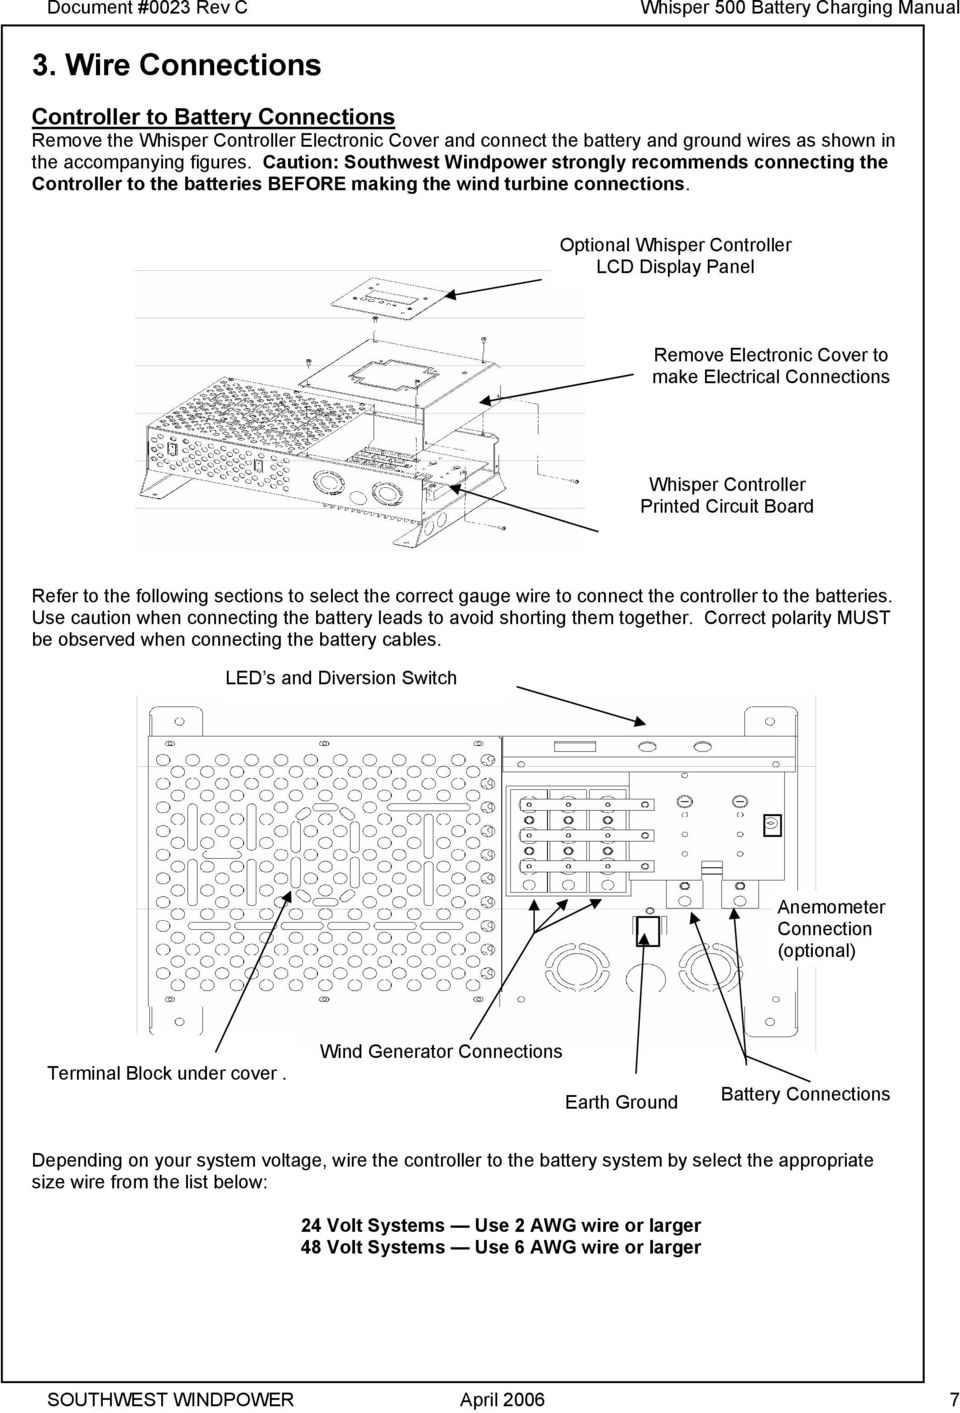 medium resolution of caution southwest windpower strongly recommends connecting the controller to the batteries before making the wind 10 controller to wind generator wiring